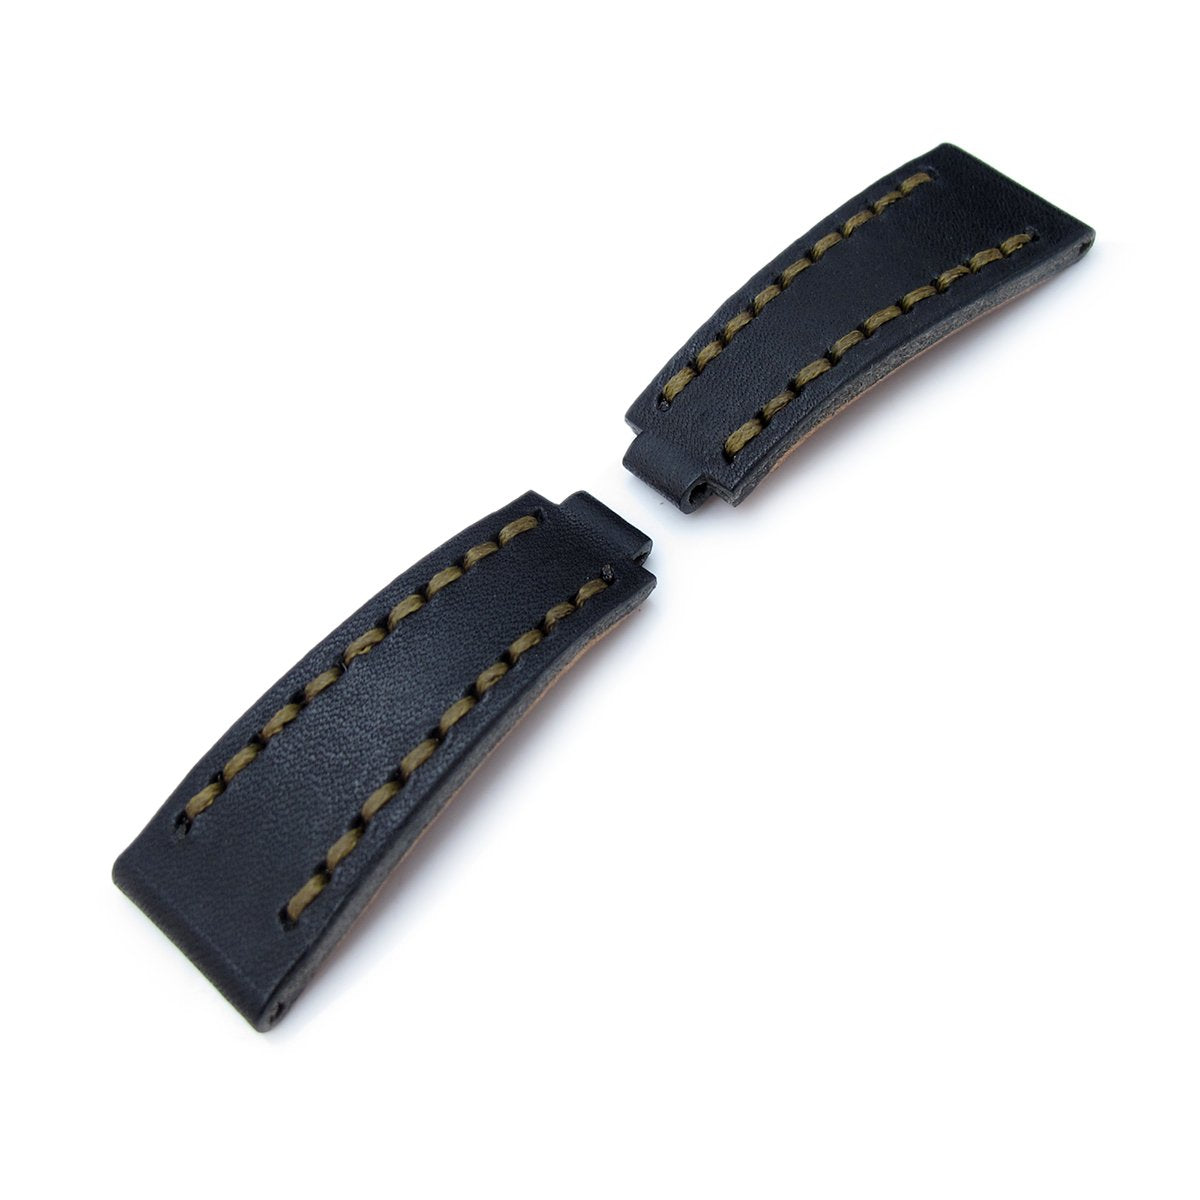 20mm MiLTAT RX Collection Watch Strap NERO Black Genuine Calf Green St. Tailor-made for RX SUB & EXP Strapcode Watch Bands